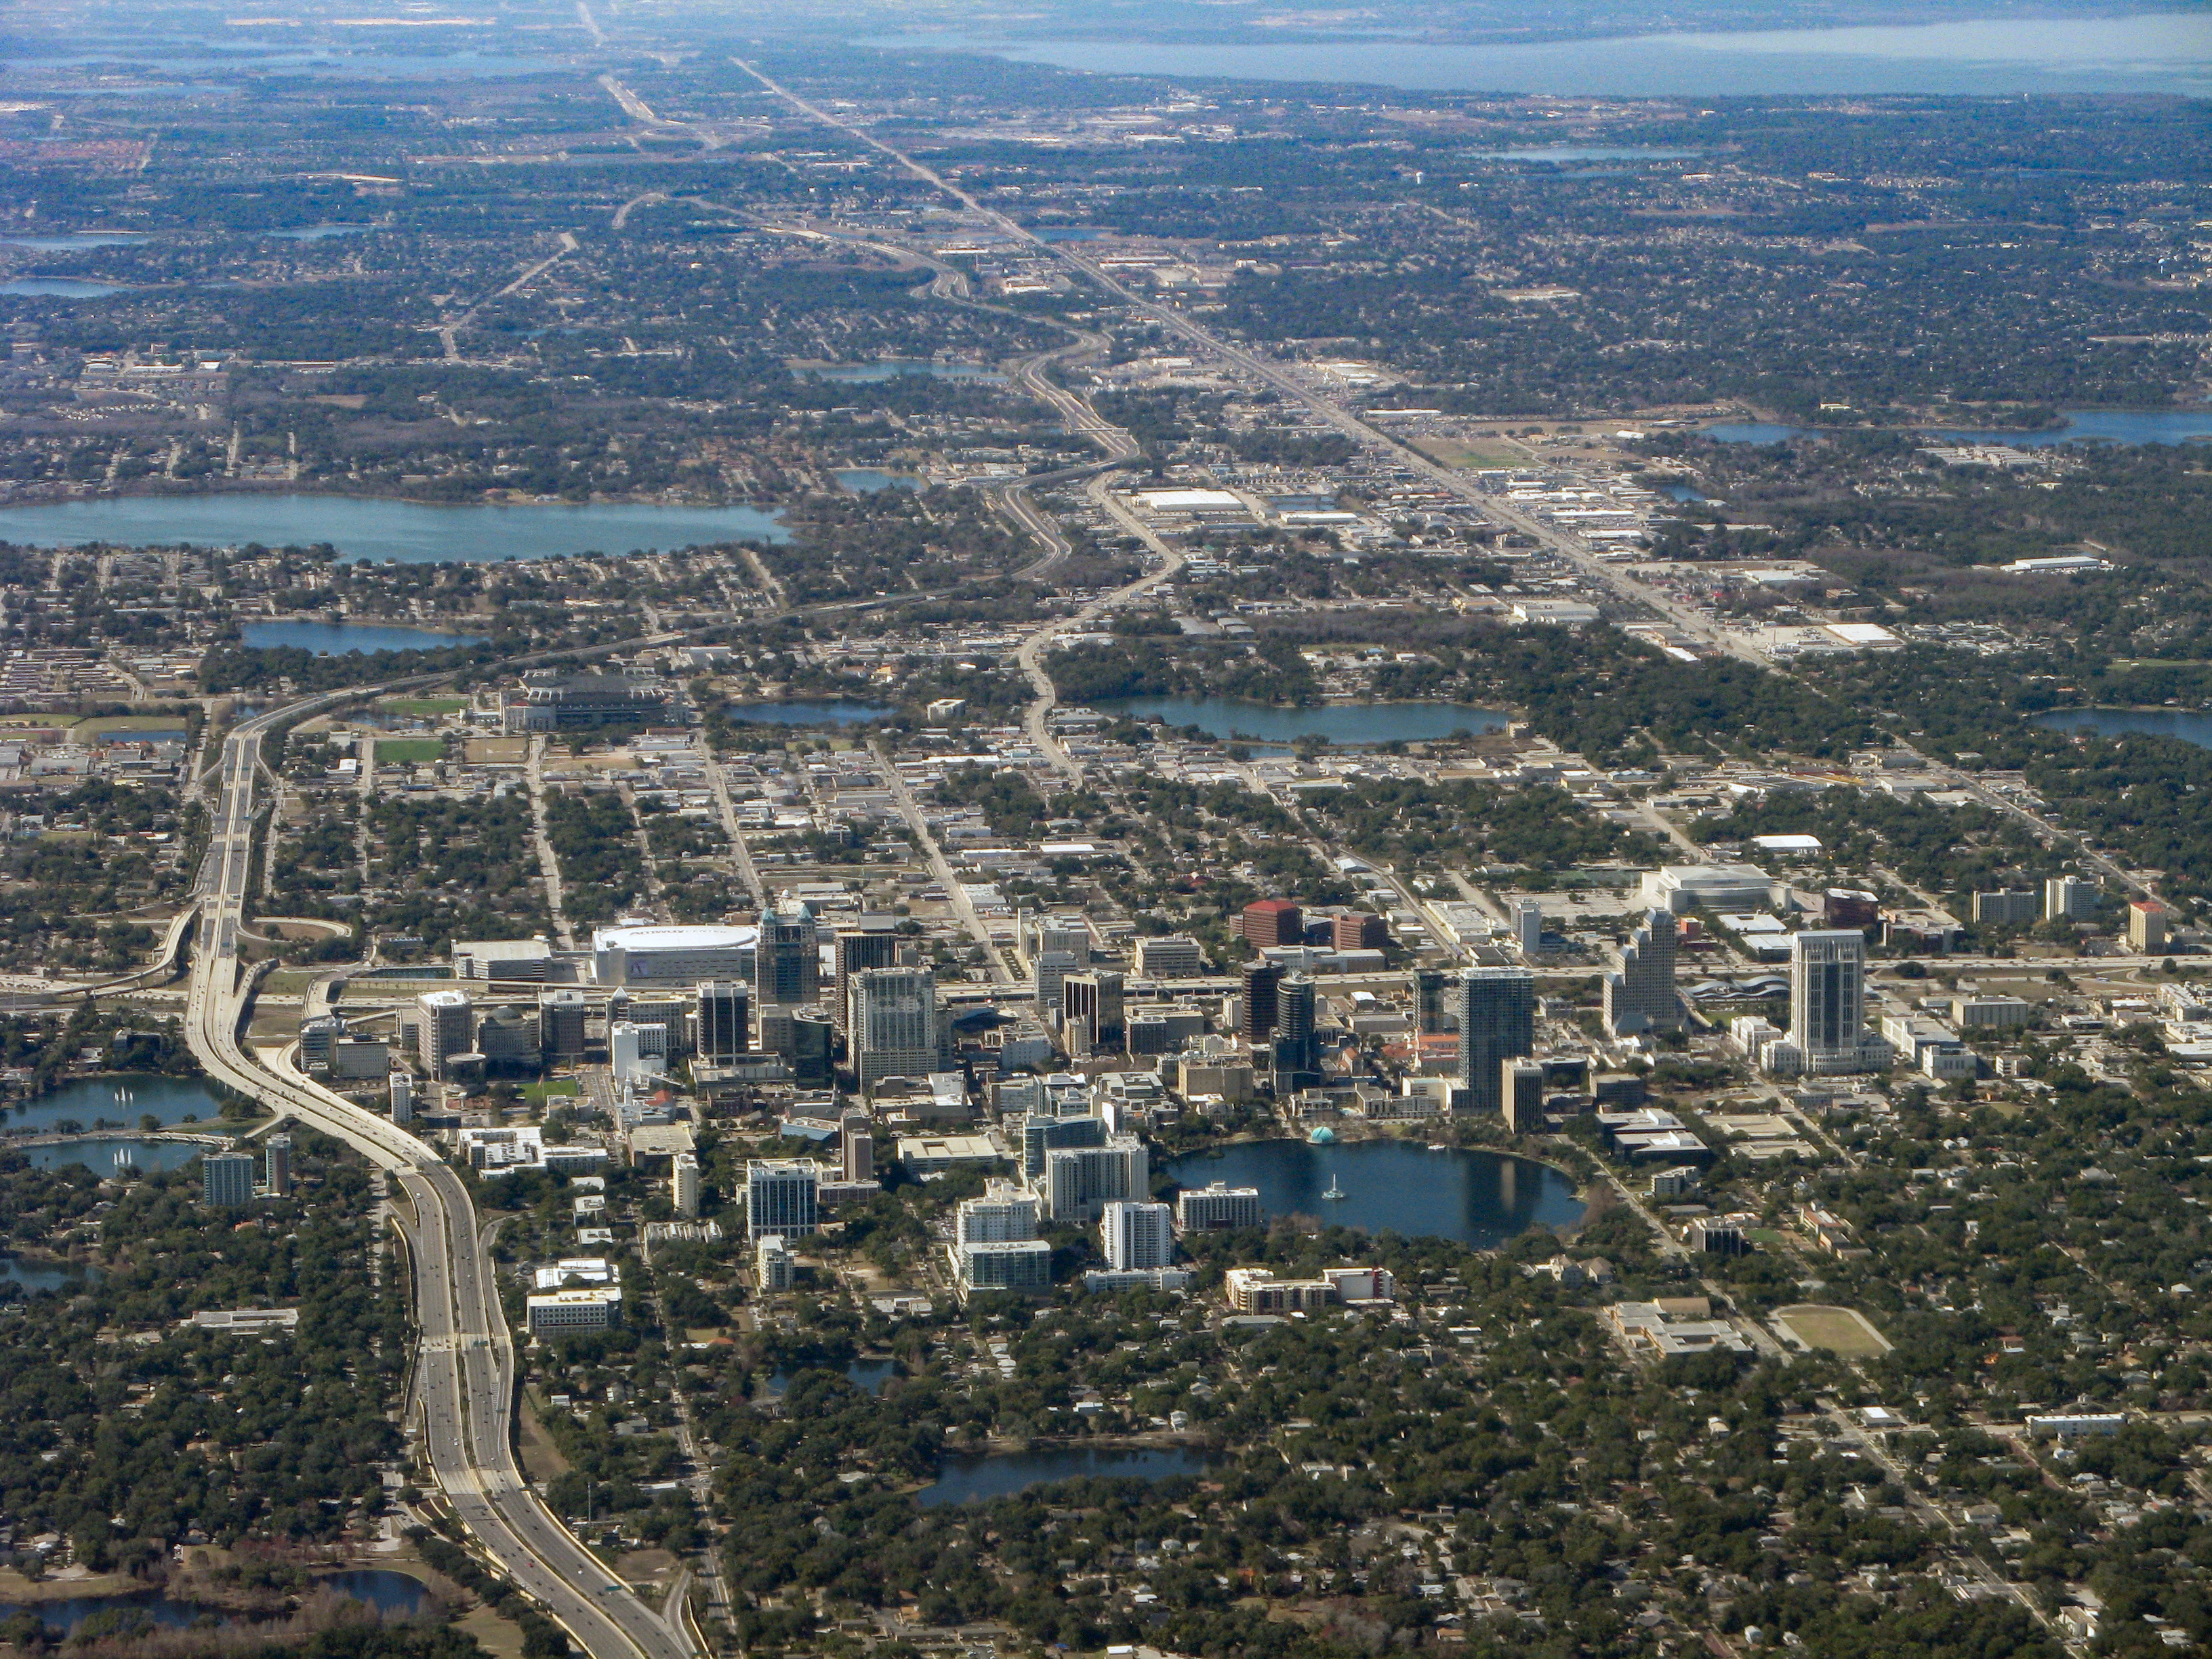 Airiel View of Orlando